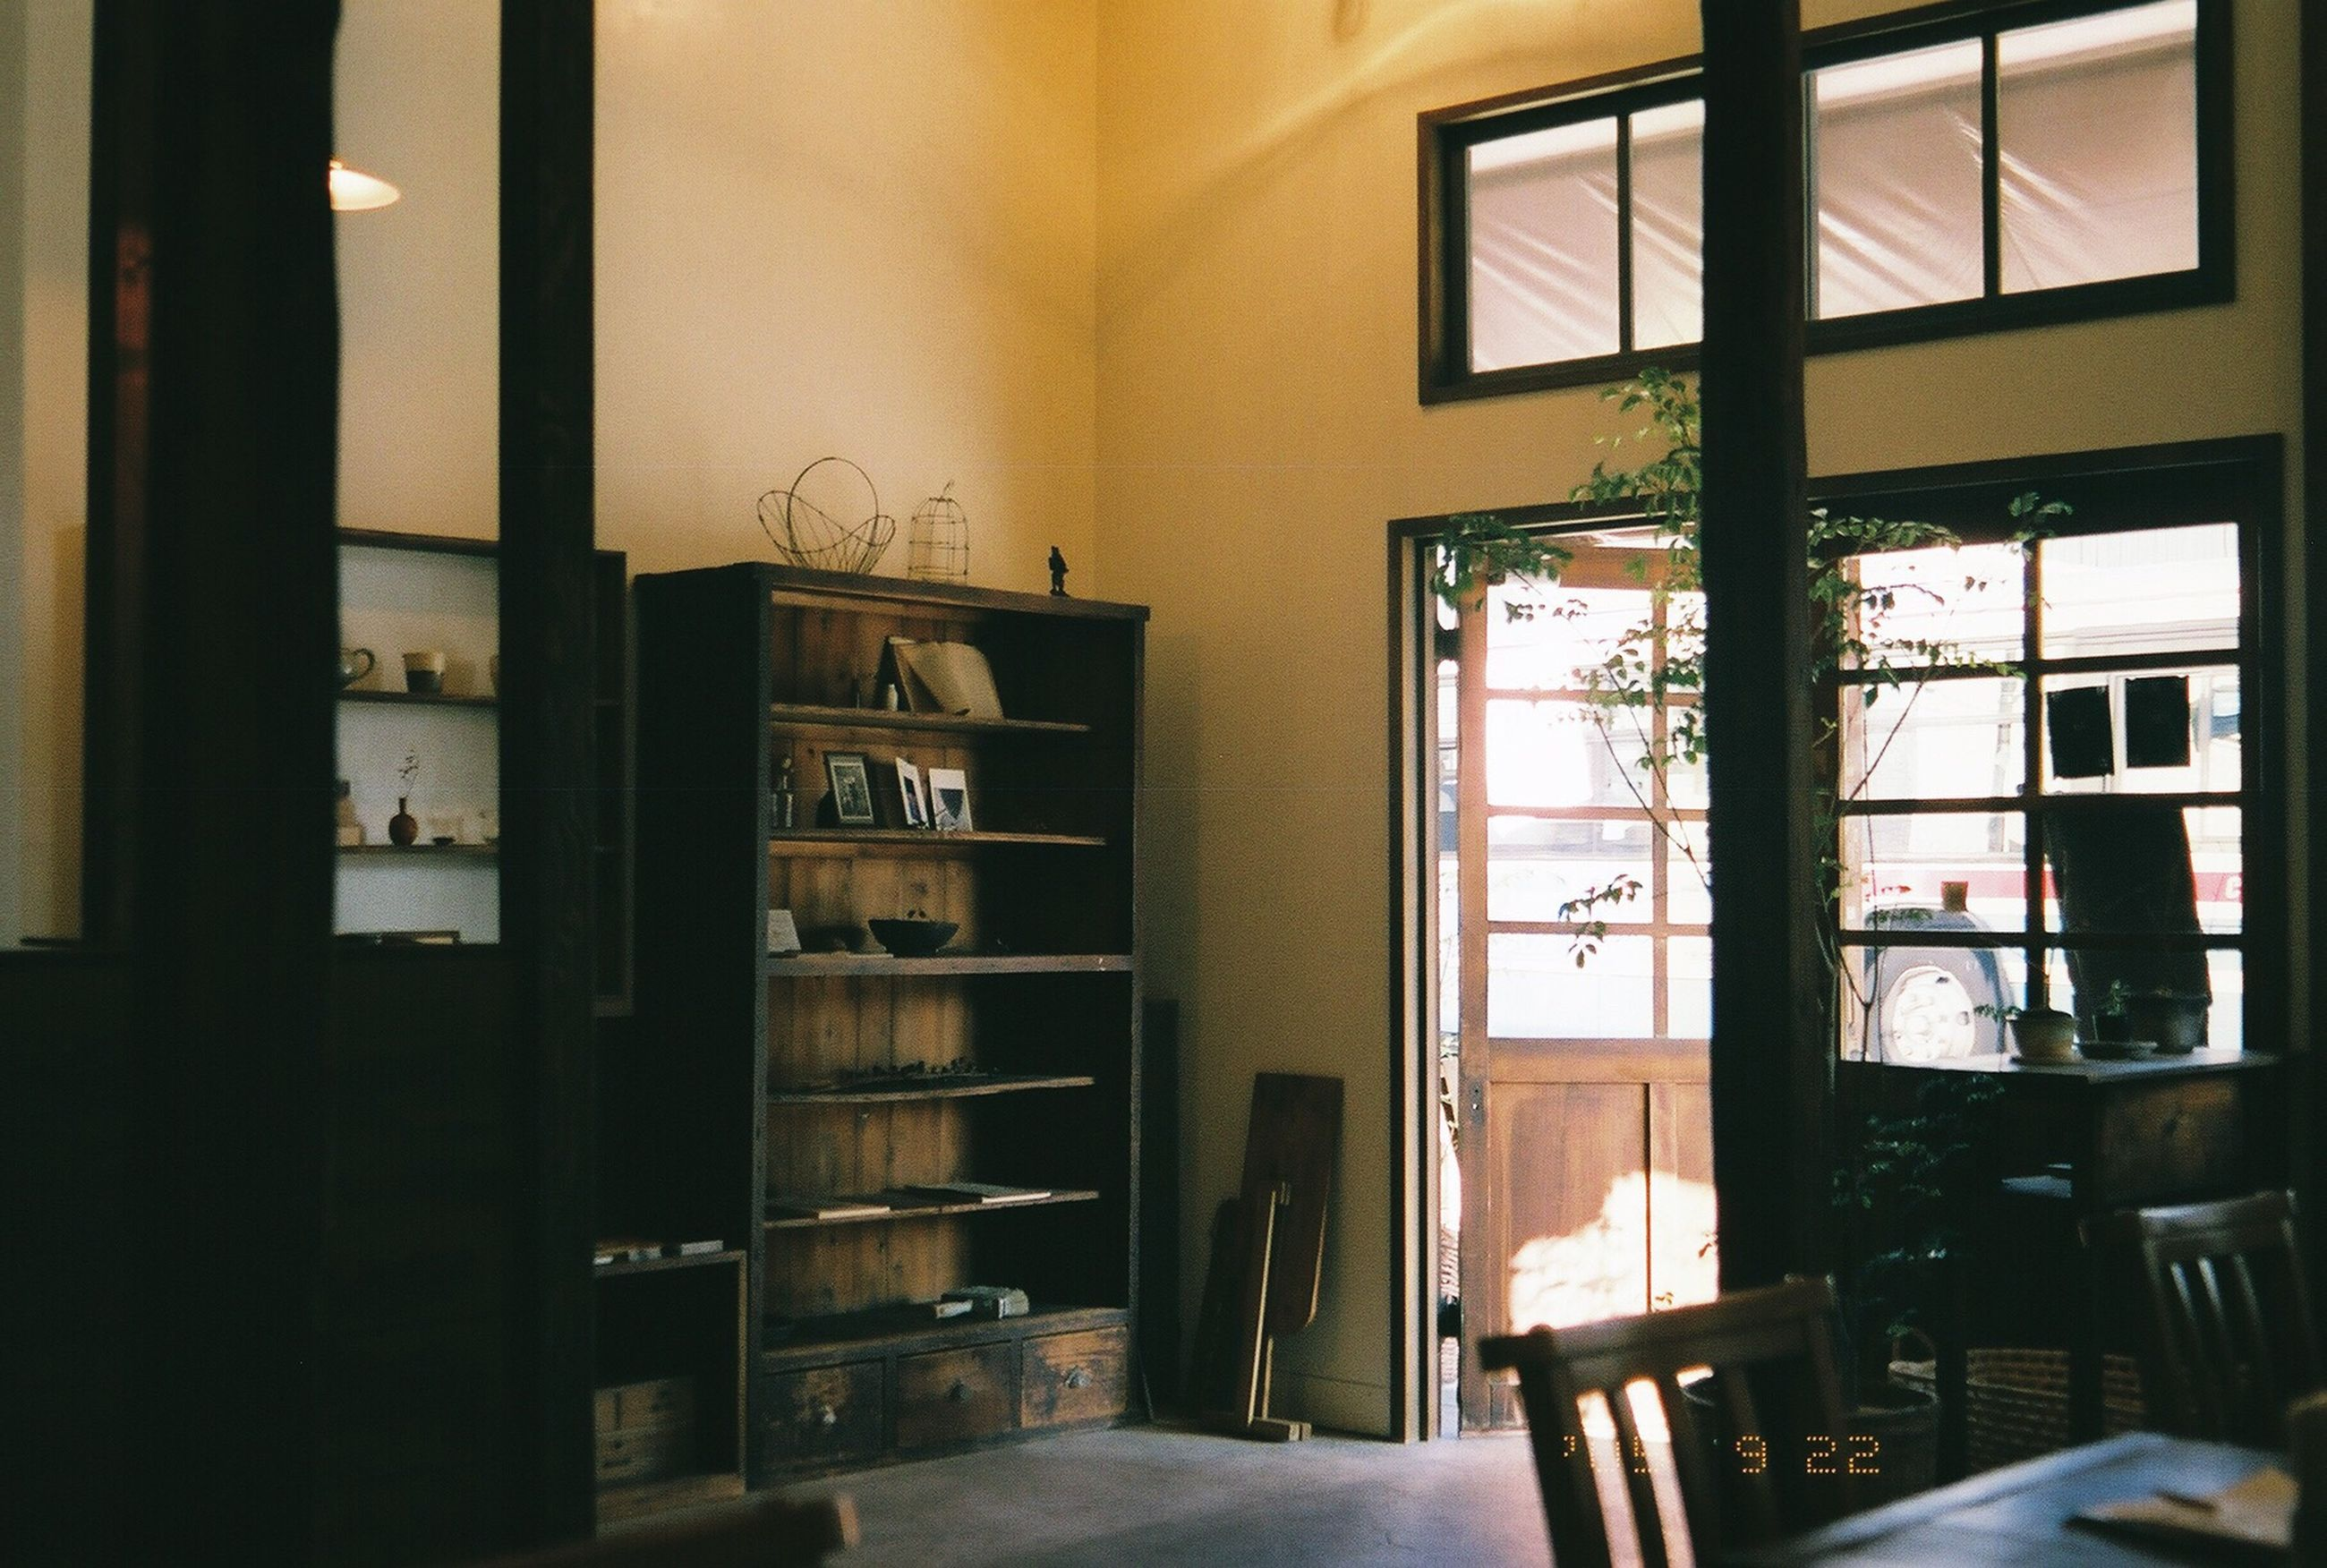 indoors, window, chair, interior, day, modern, apartment